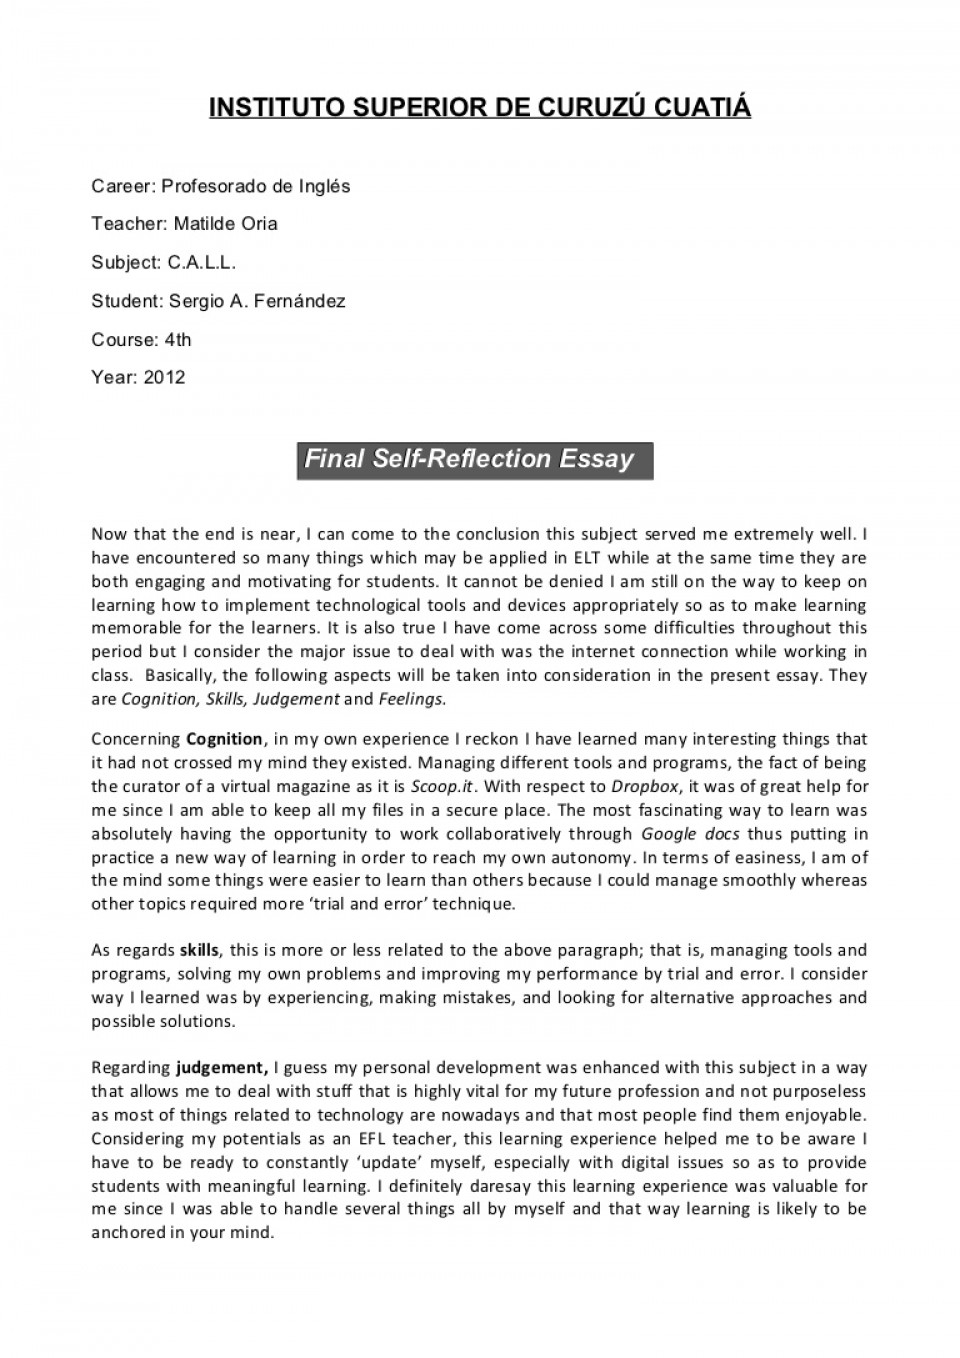 007 Reflectionsay Format Reflective Self Examples Mla Sample Sergio Finalself Reflectionessay Phpapp01 Thumbn Argumentative Apa Formal Tagalog Asa Critical Mba Scholarship Wondrous Reflection Essay Example Form Guidelines 960